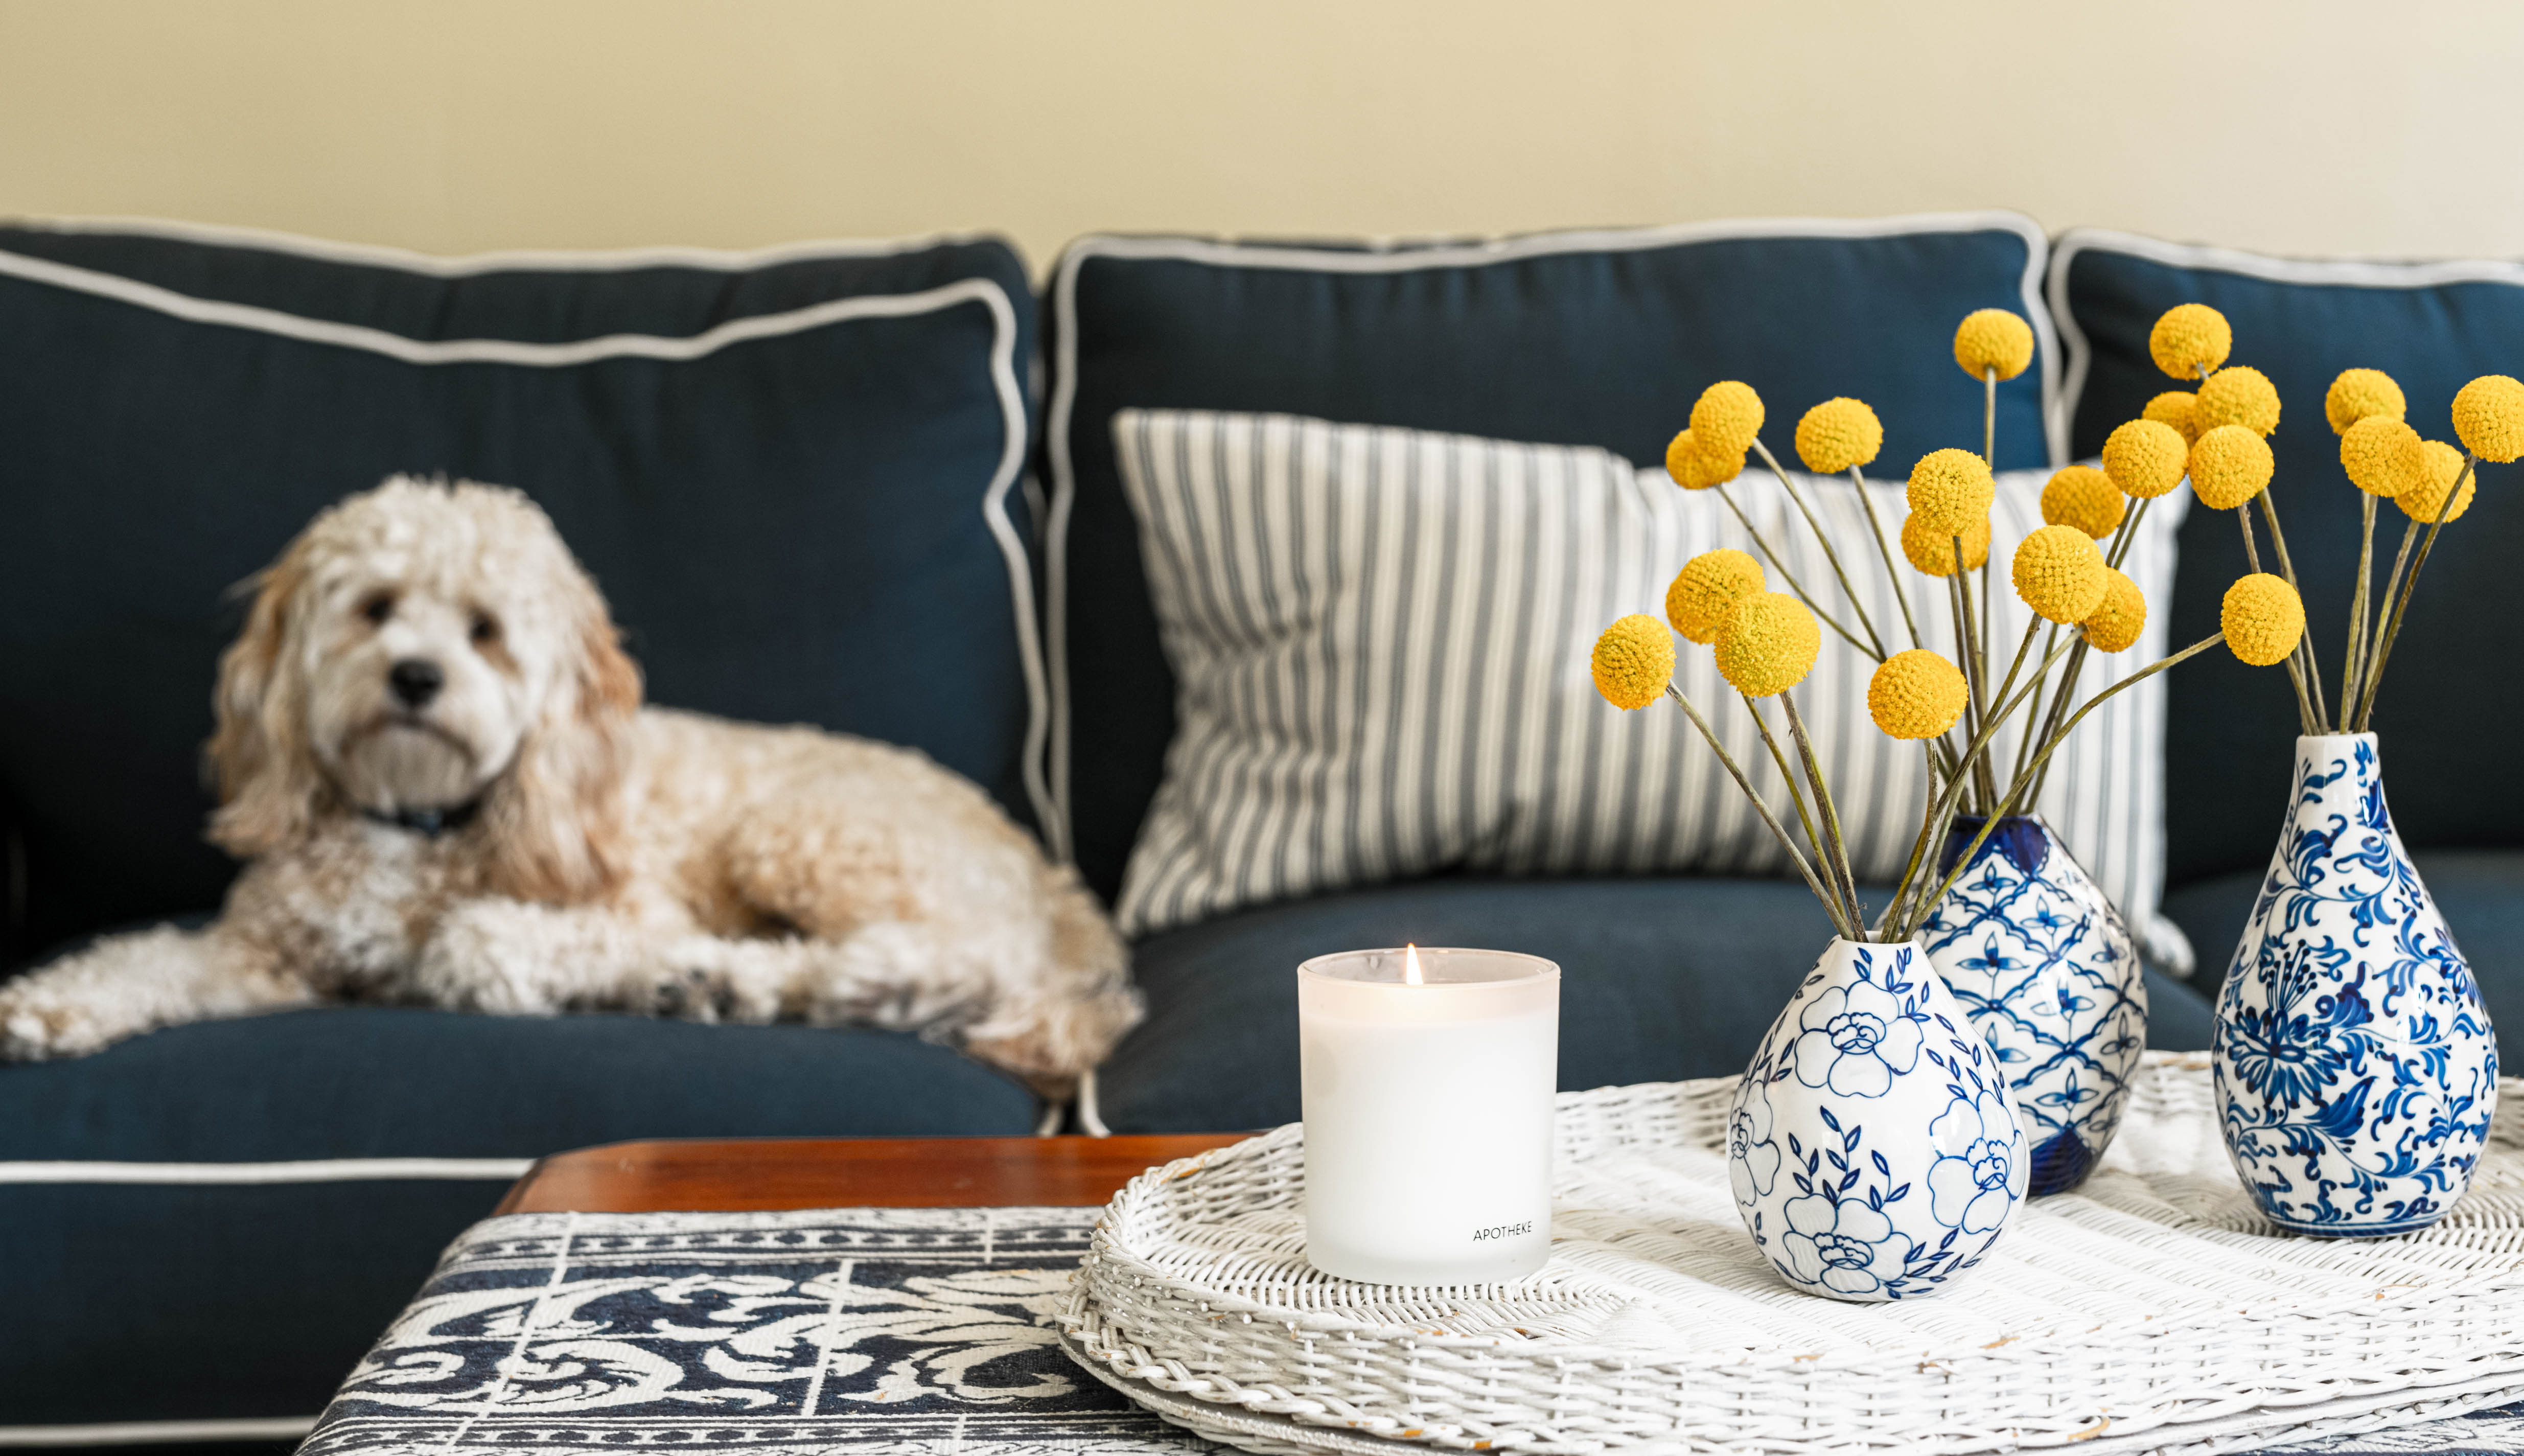 Dog sitting on a couch behind vases of dried flowers